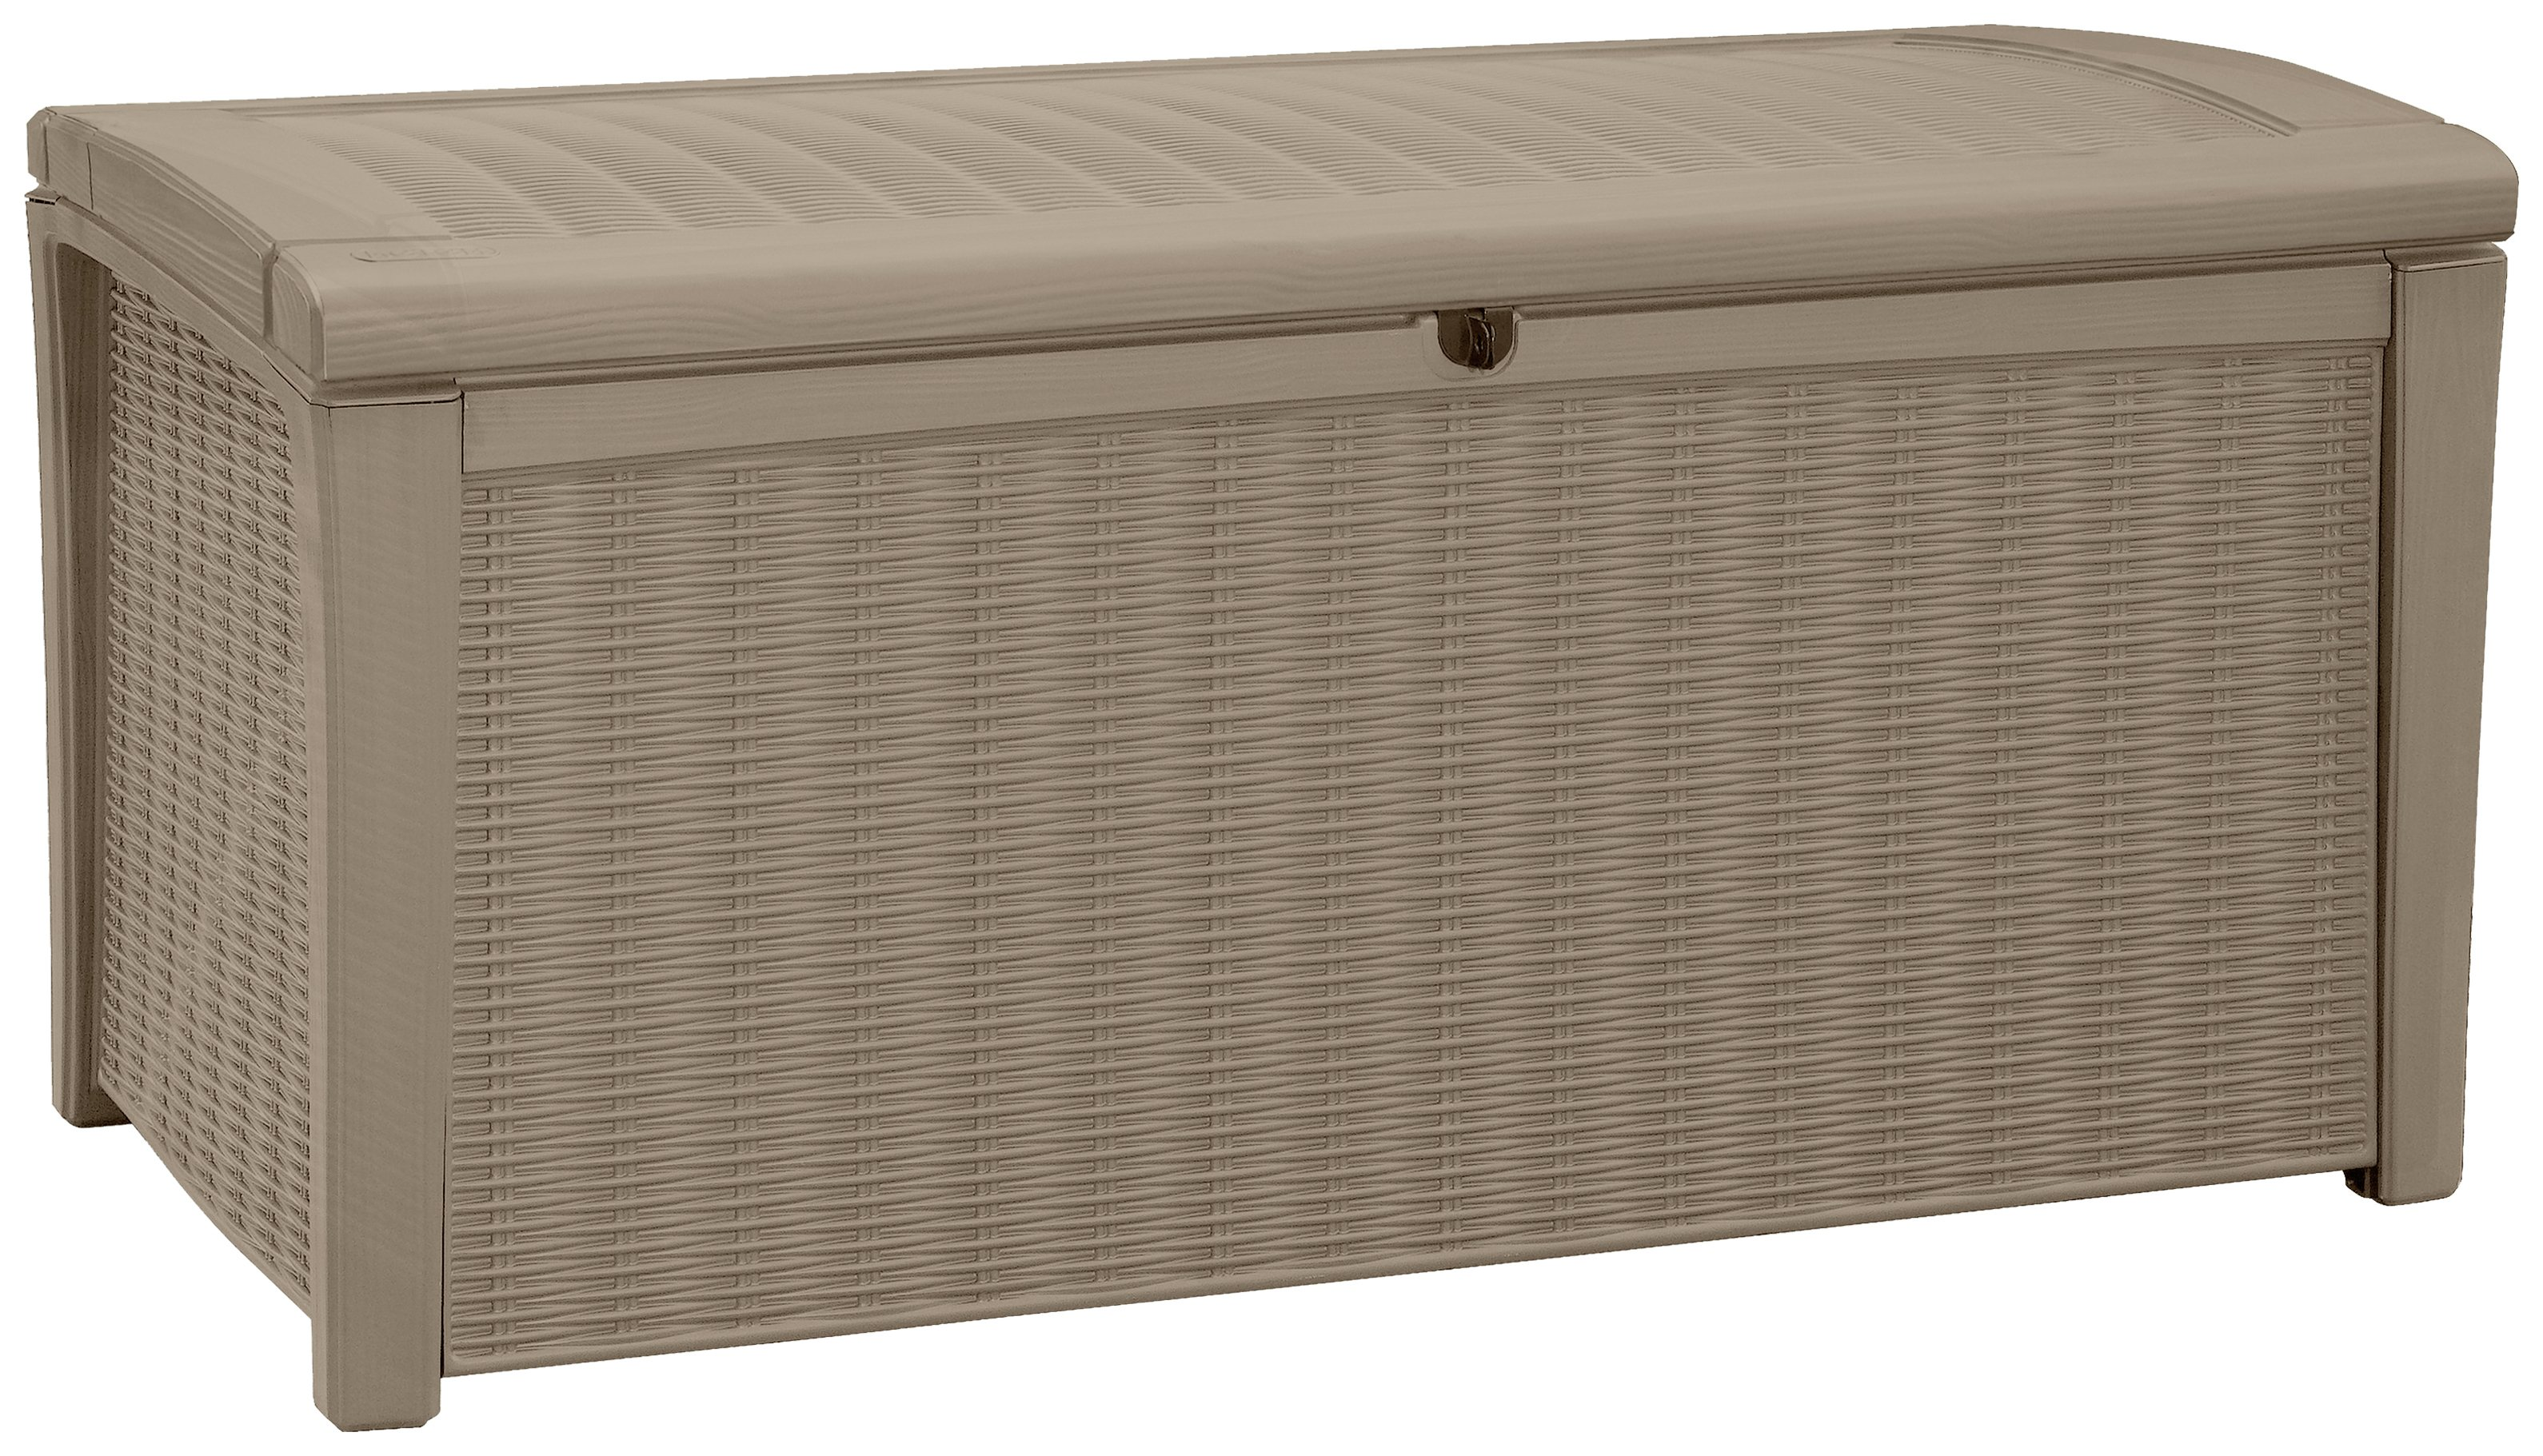 Sale On Keter Borneo Storage Bench Cappuccino Keter